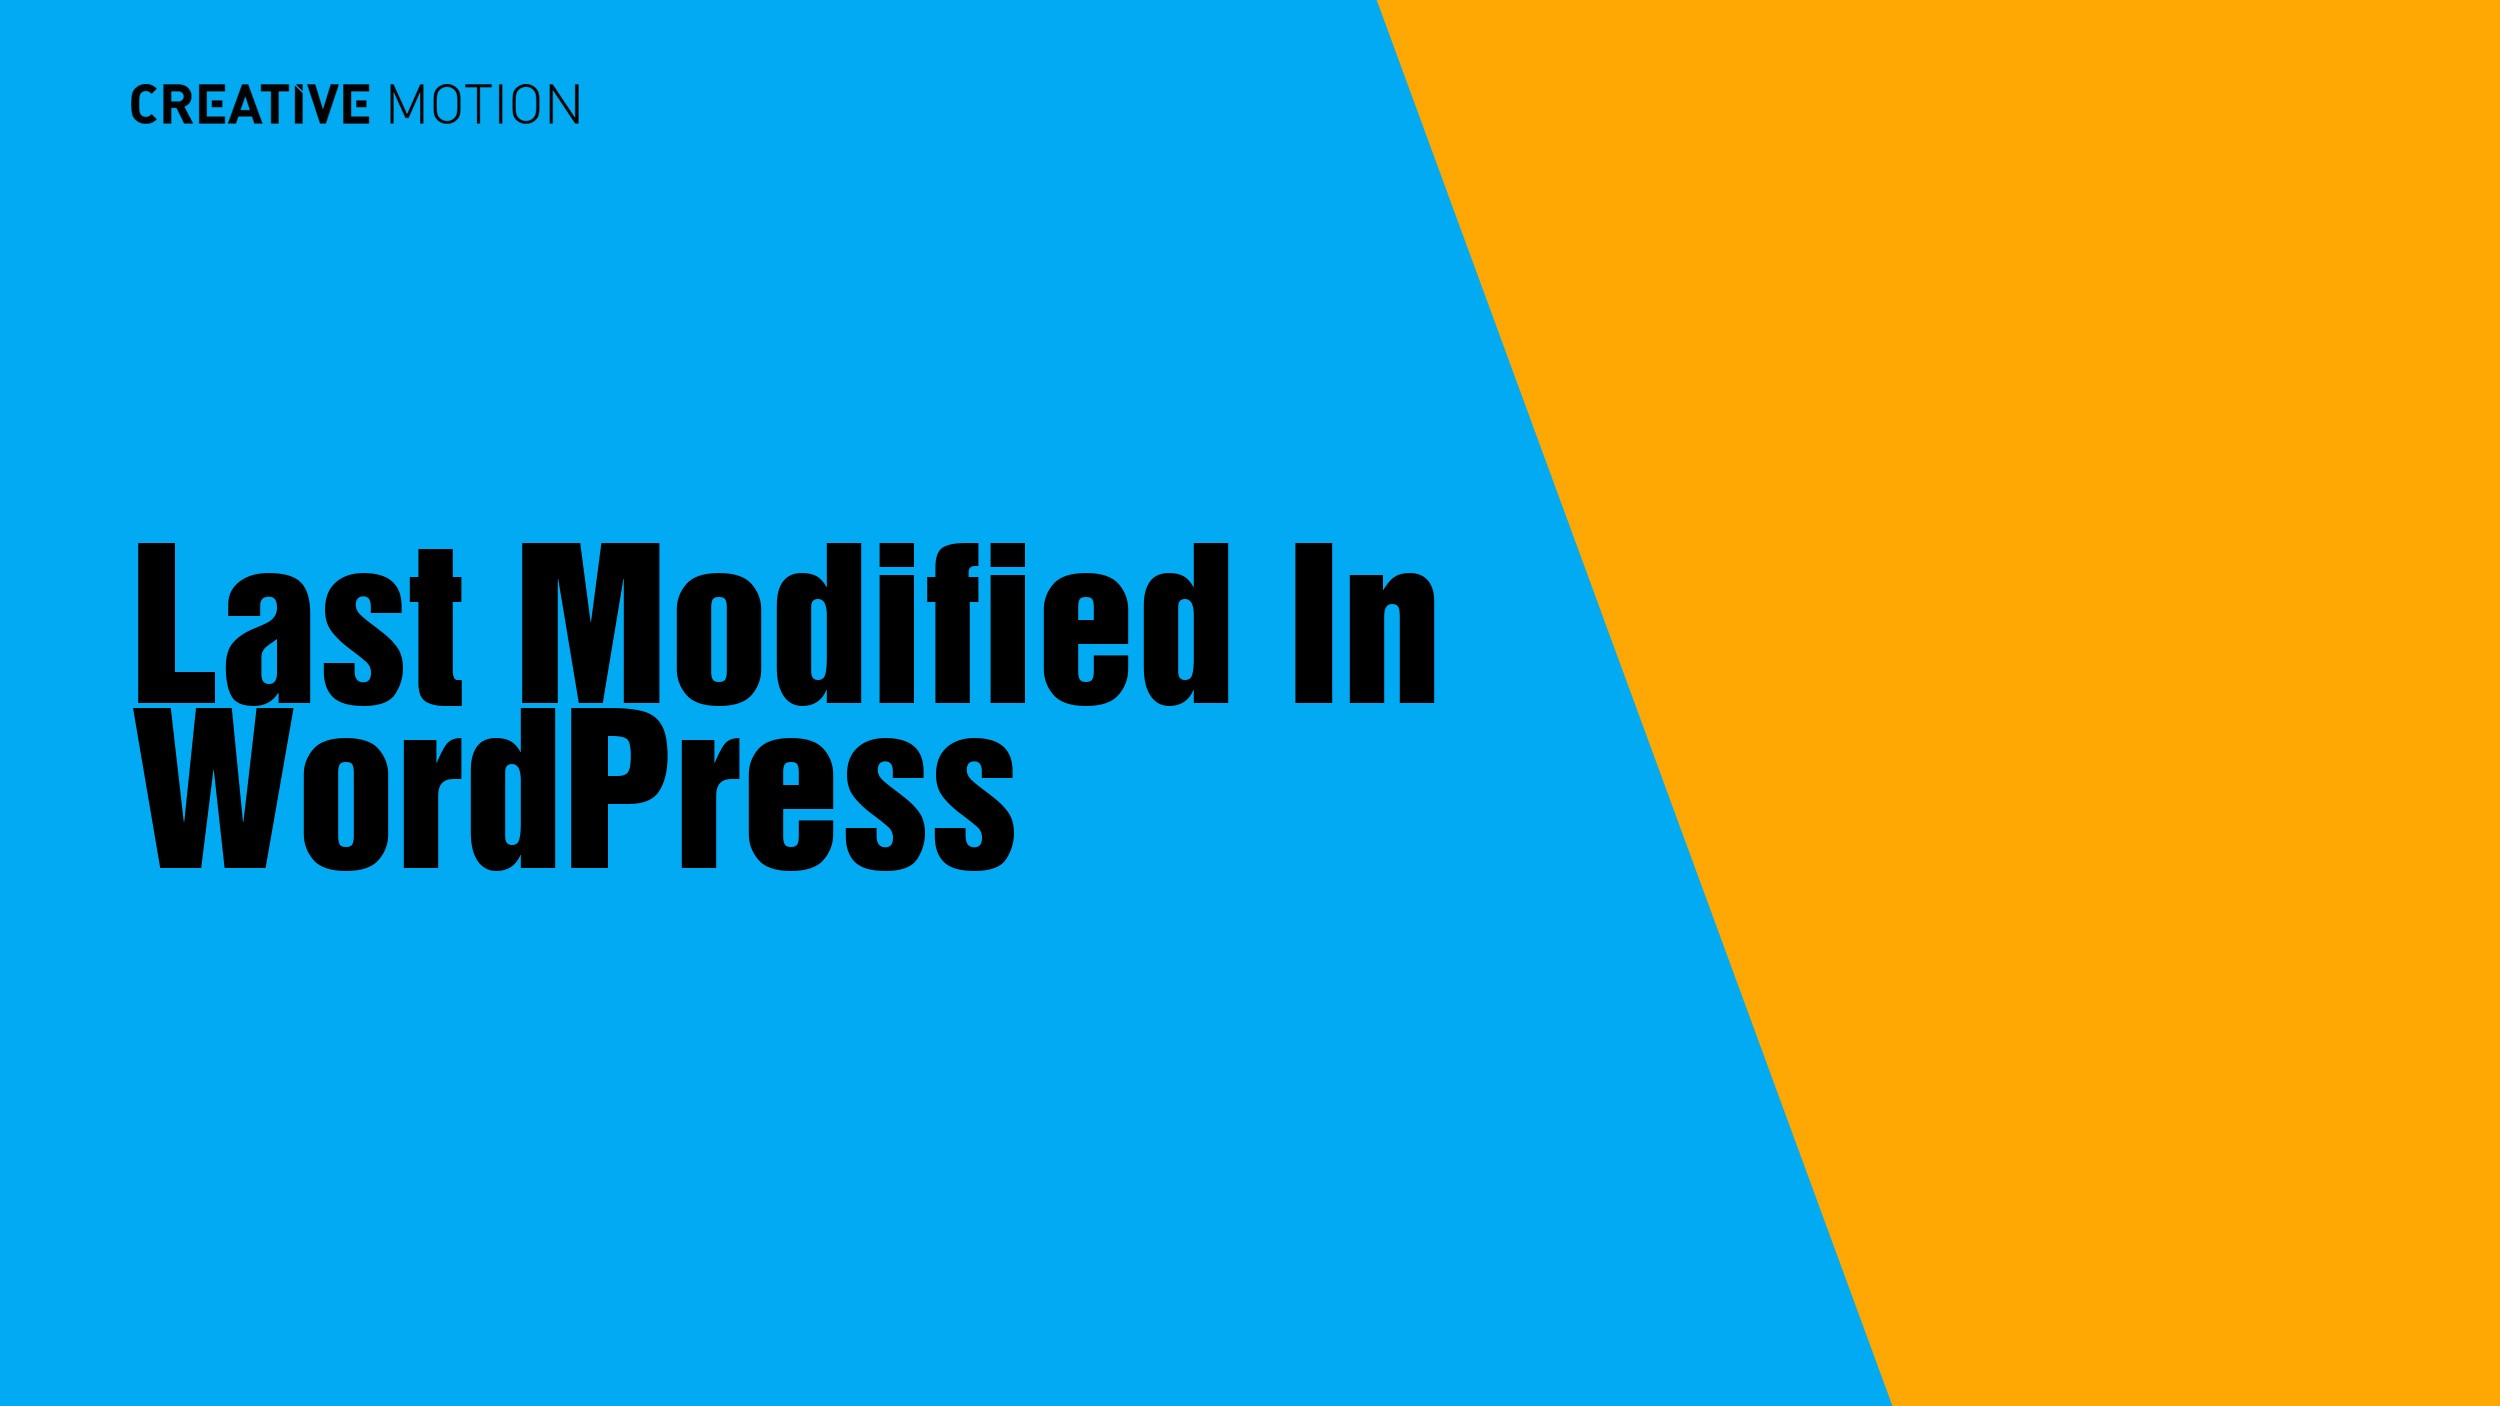 Last Modified In WordPress